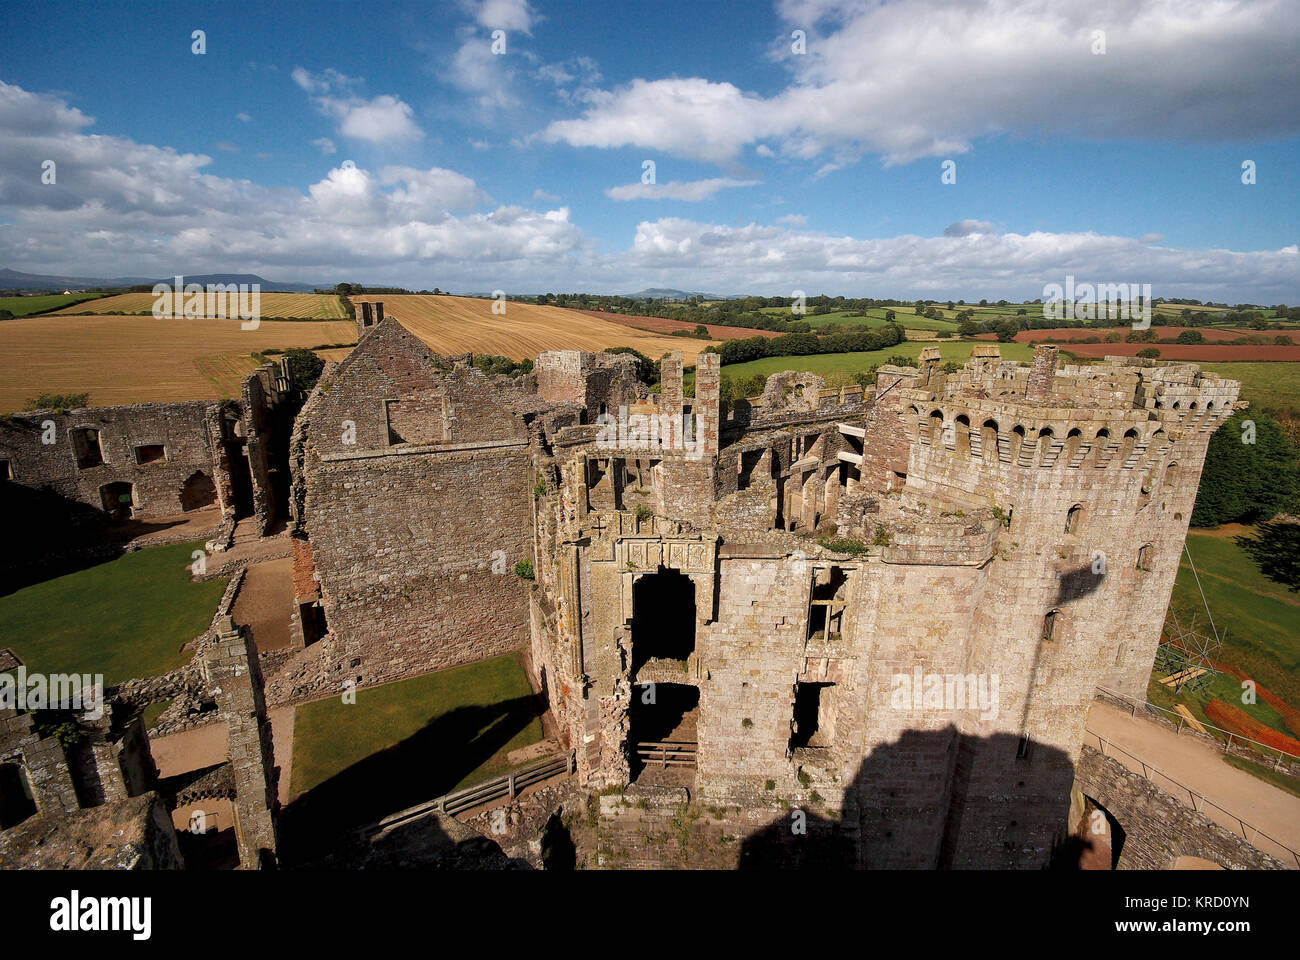 Raglan Castle near Raglan, Gwent, a military fortress built in the middle ages to defend the Welsh border against - Stock Image